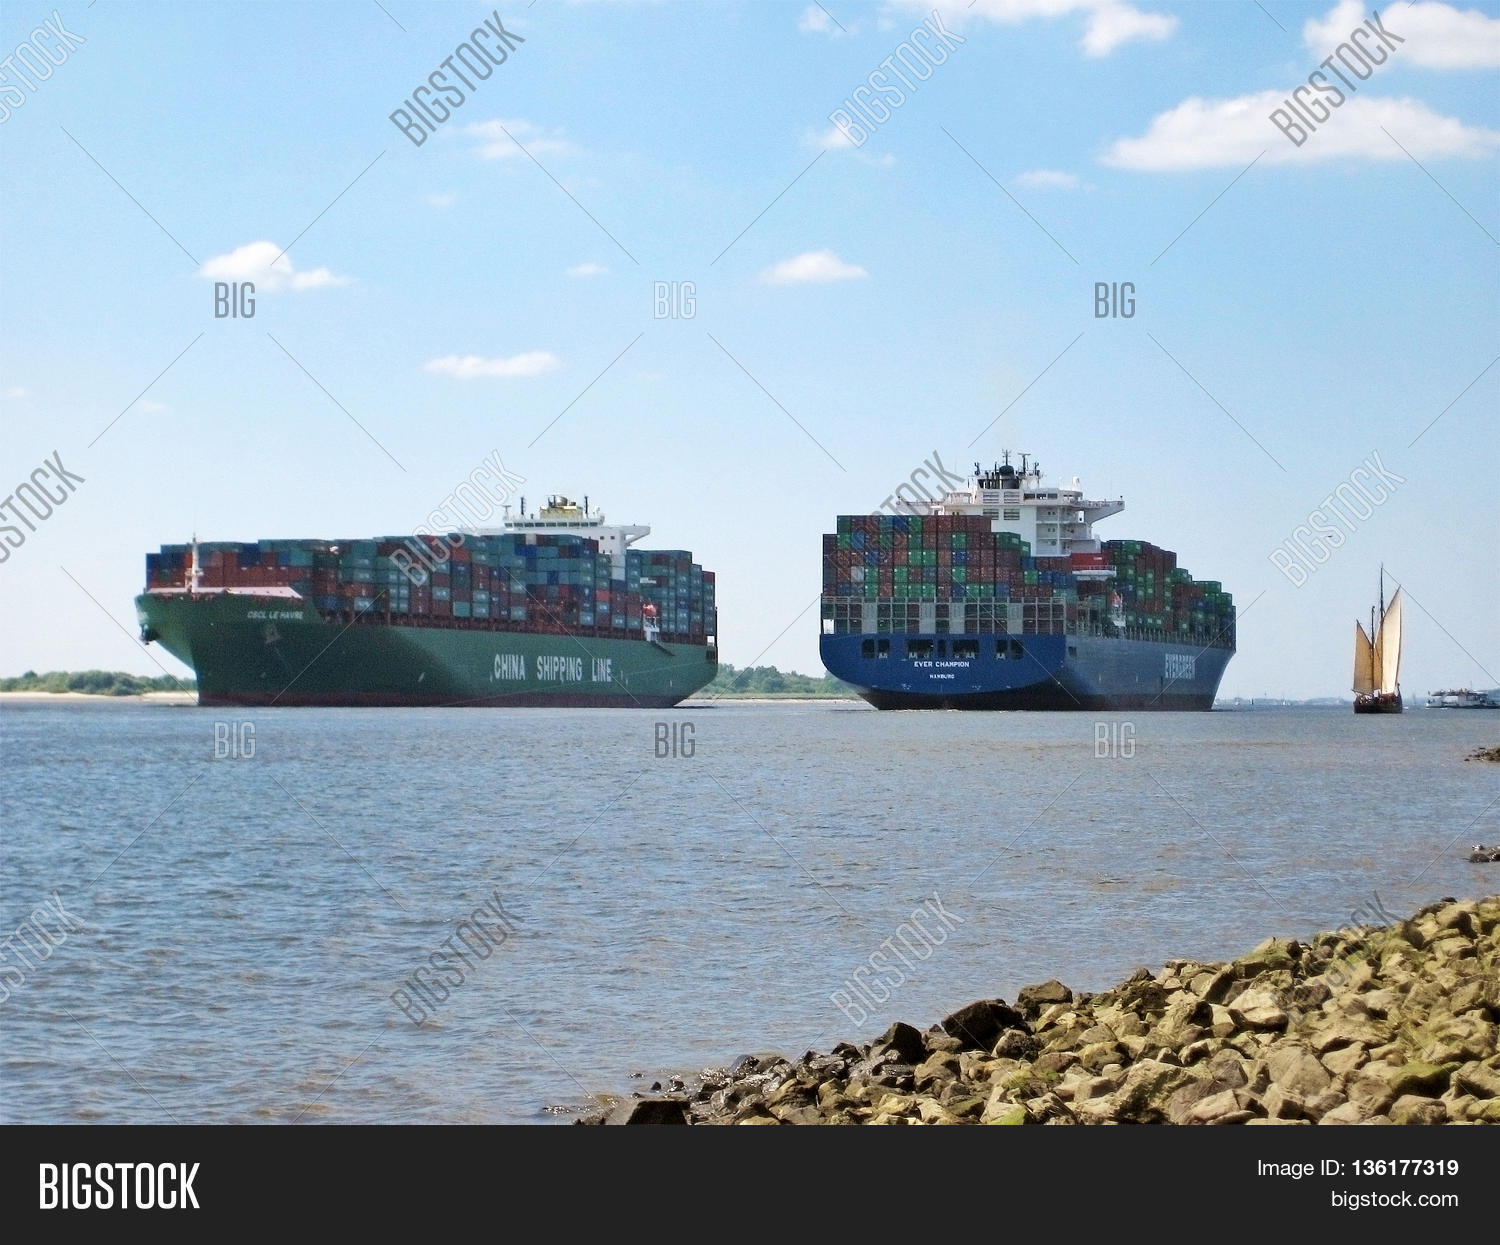 Stock photo hamburg germany riverside new - Hamburg Germany May 24 2008 Big Container Ships Crossing On River Elbe View From